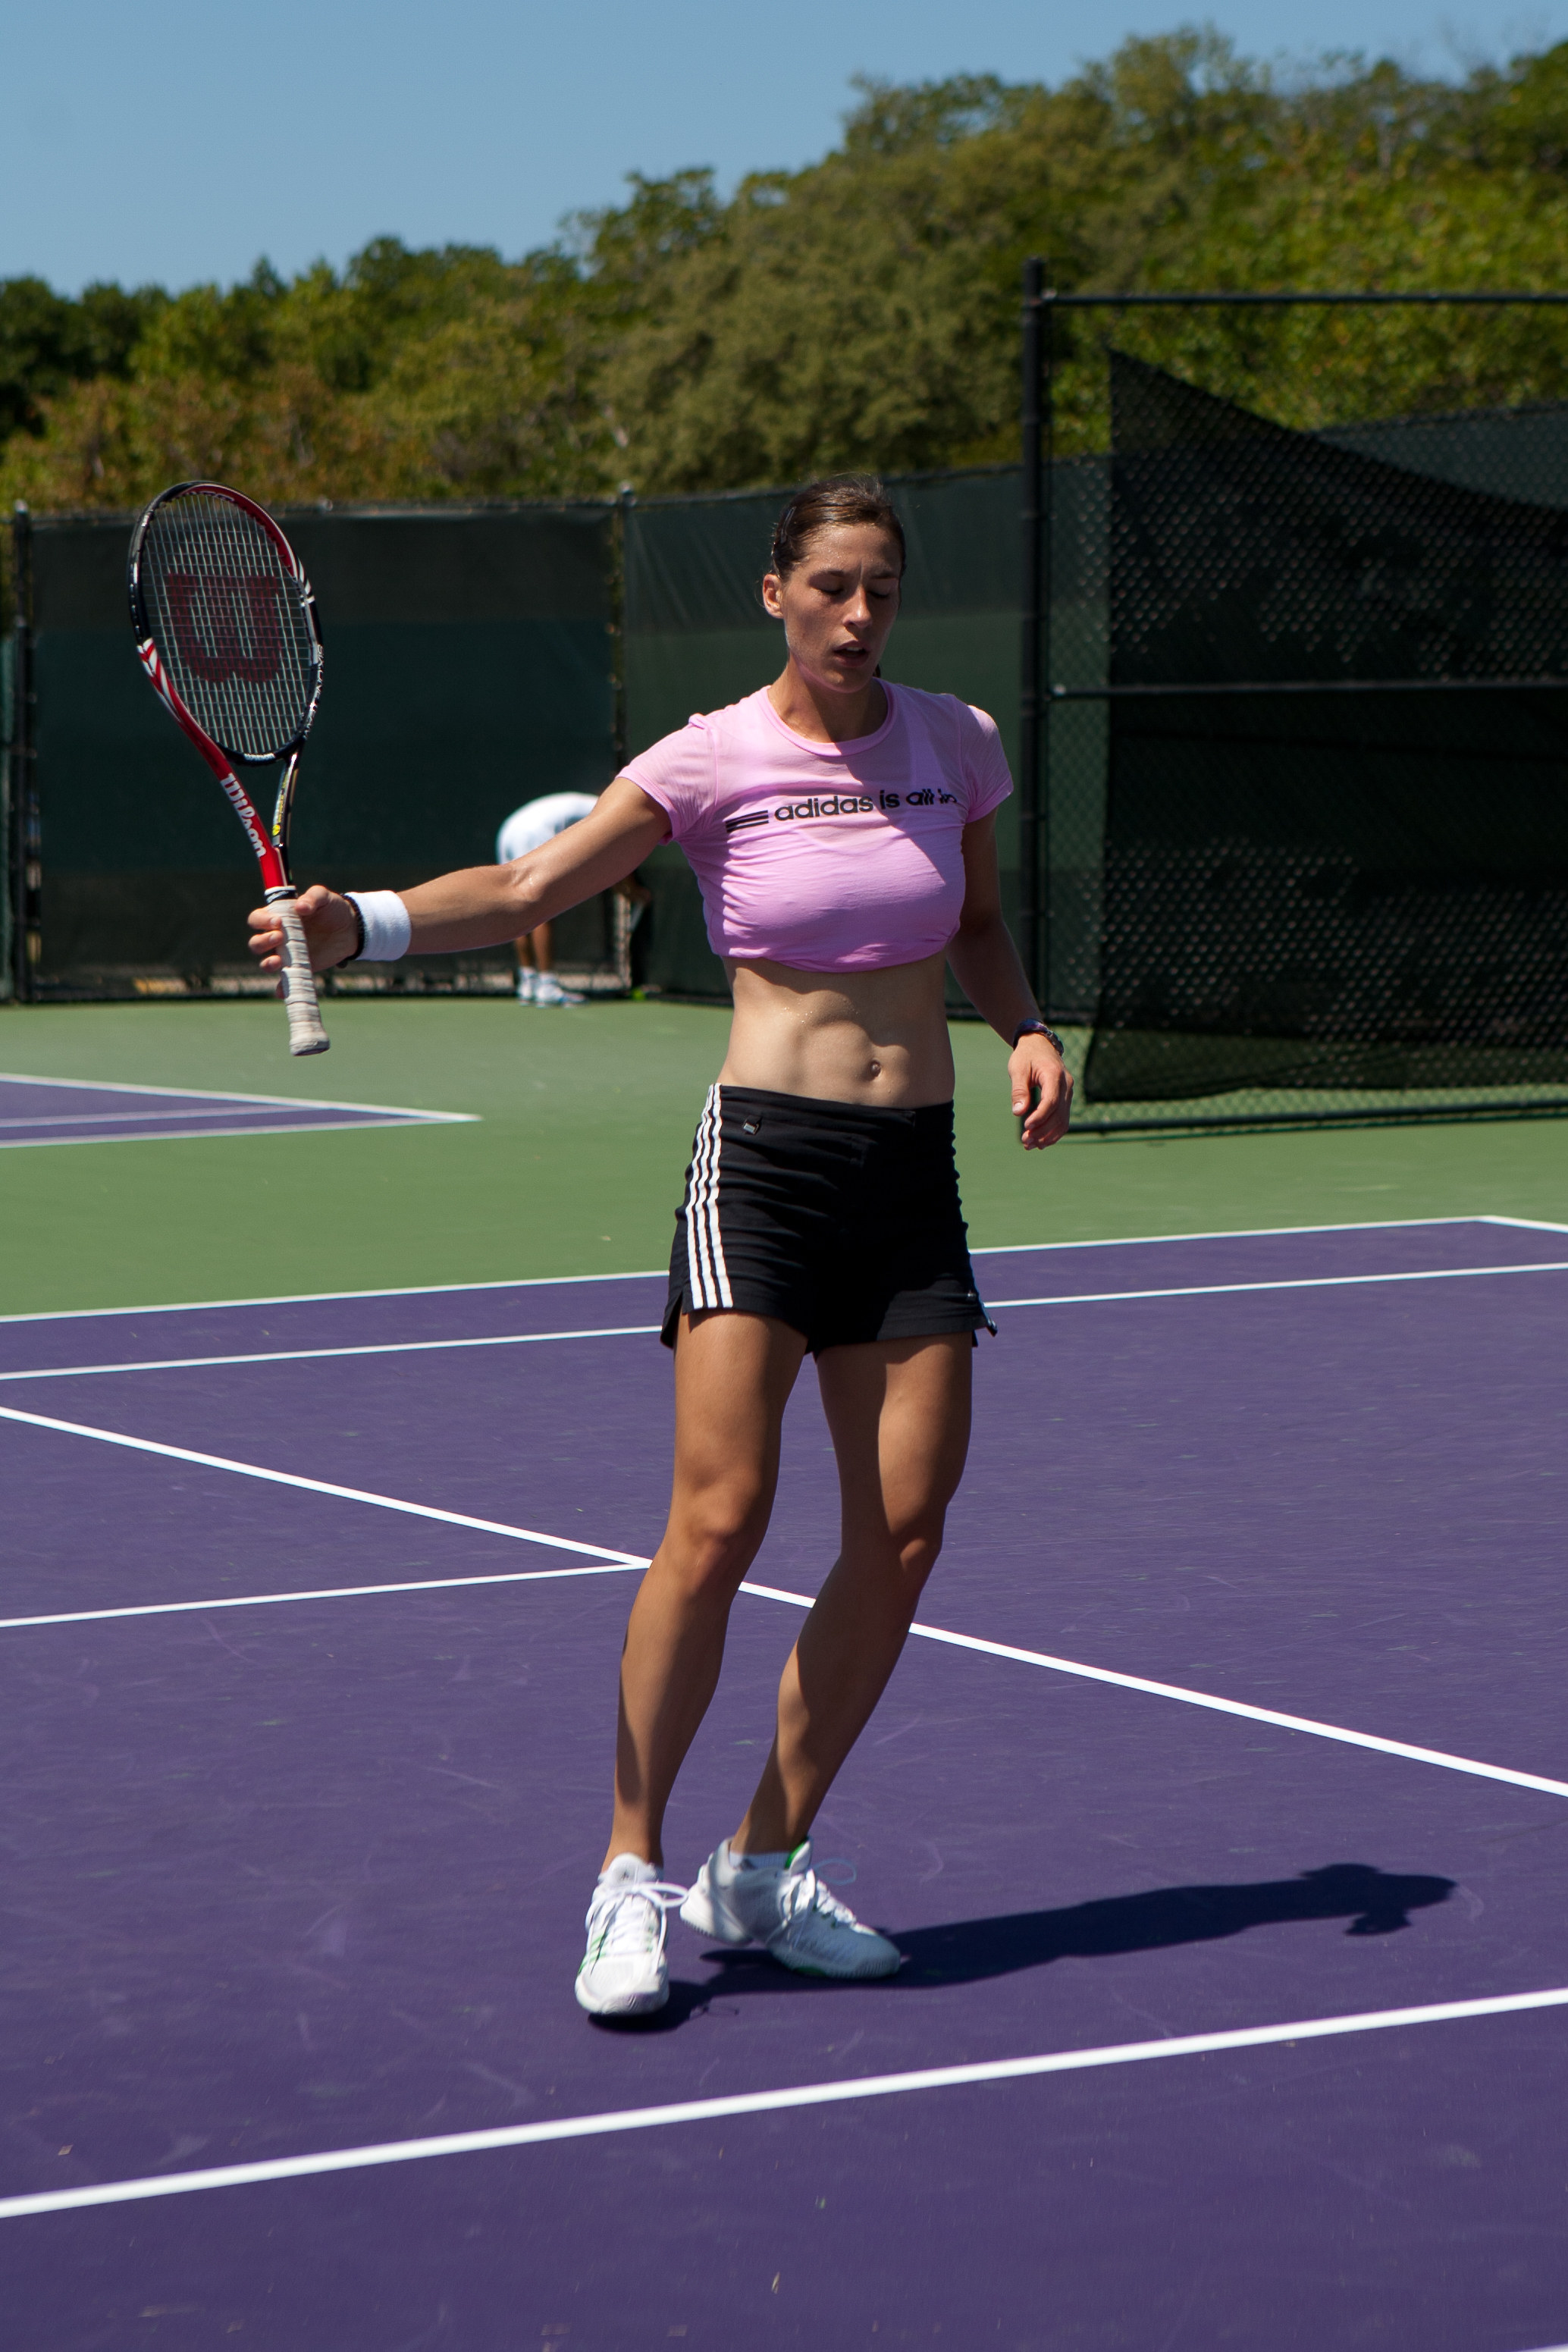 Andrea Petkovic gets a boyfriend and tanks in the rankings. The chatty and likeable Petkovic ...